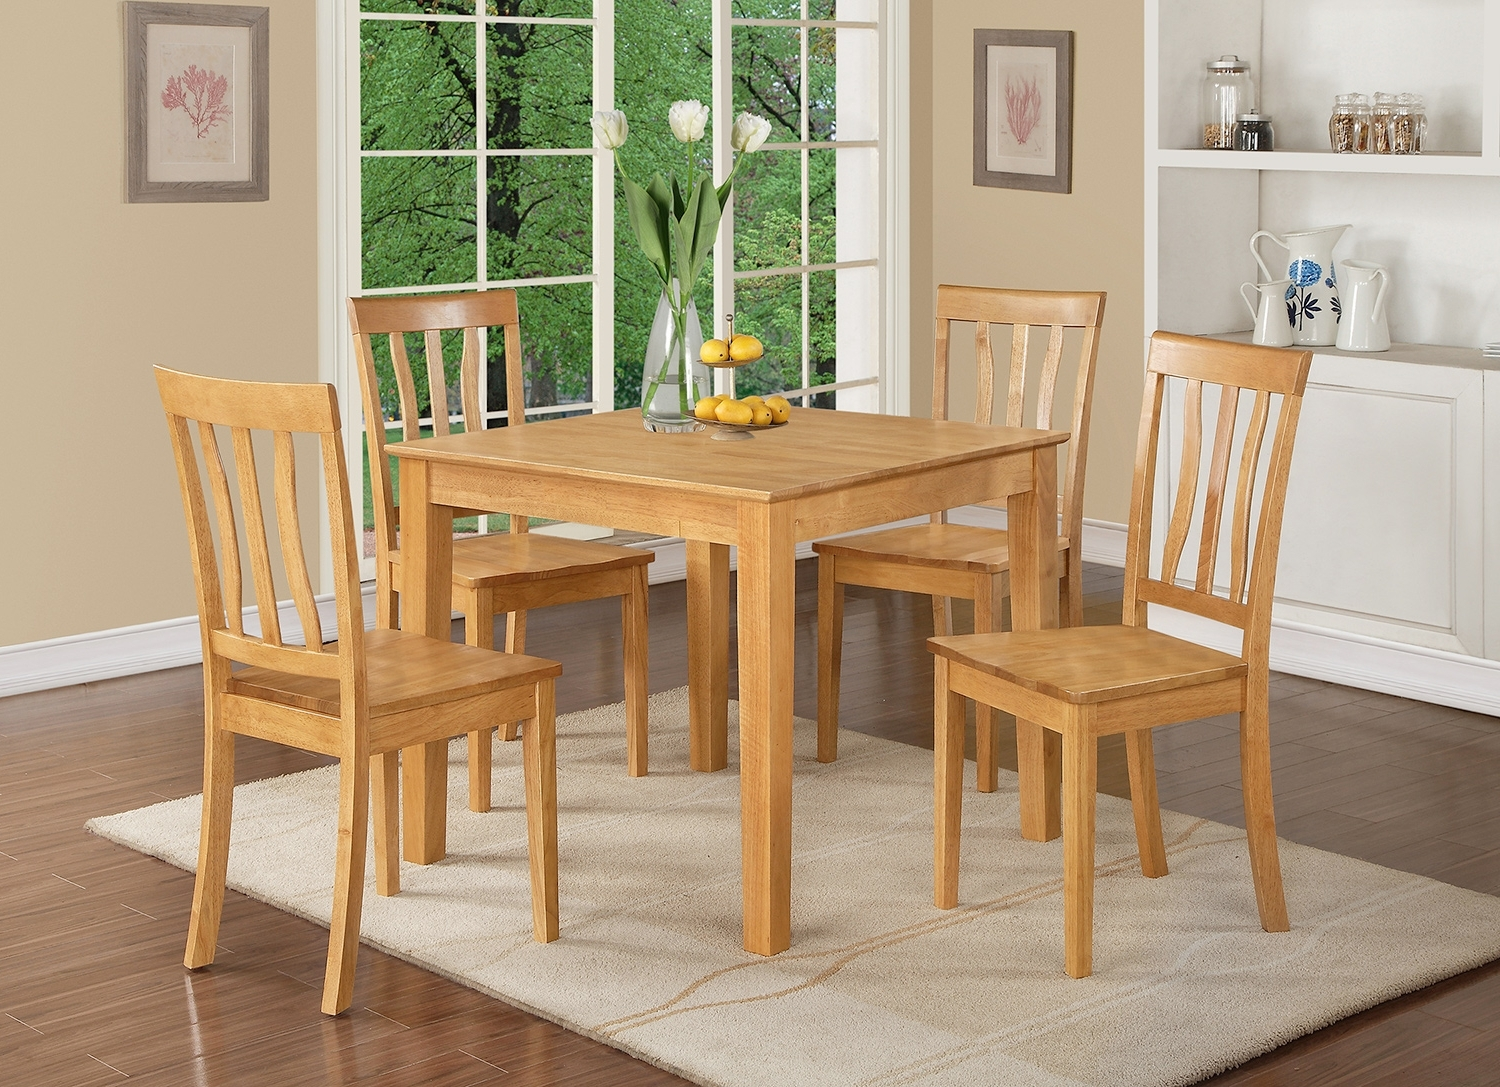 3 Piece Small Kitchen Table And Chairs Set  Square Kitchen Table And Pertaining To Most Popular Kitchen Dining Sets (View 2 of 25)